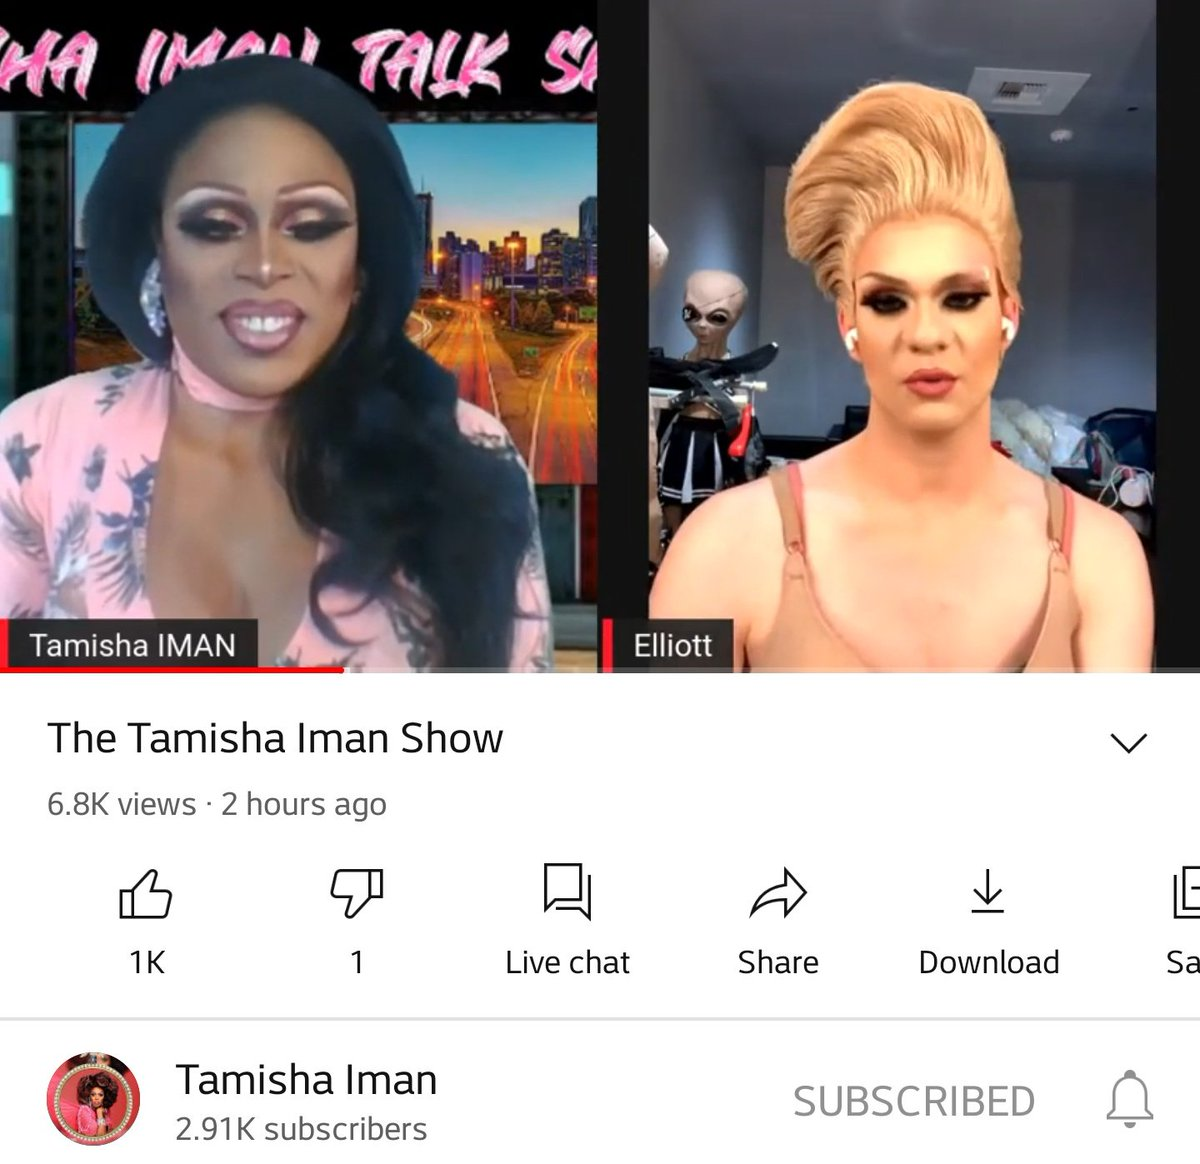 The wait is over. Tamisha has her own show now. Nothing but success for Mama Tamisha  #DragRace